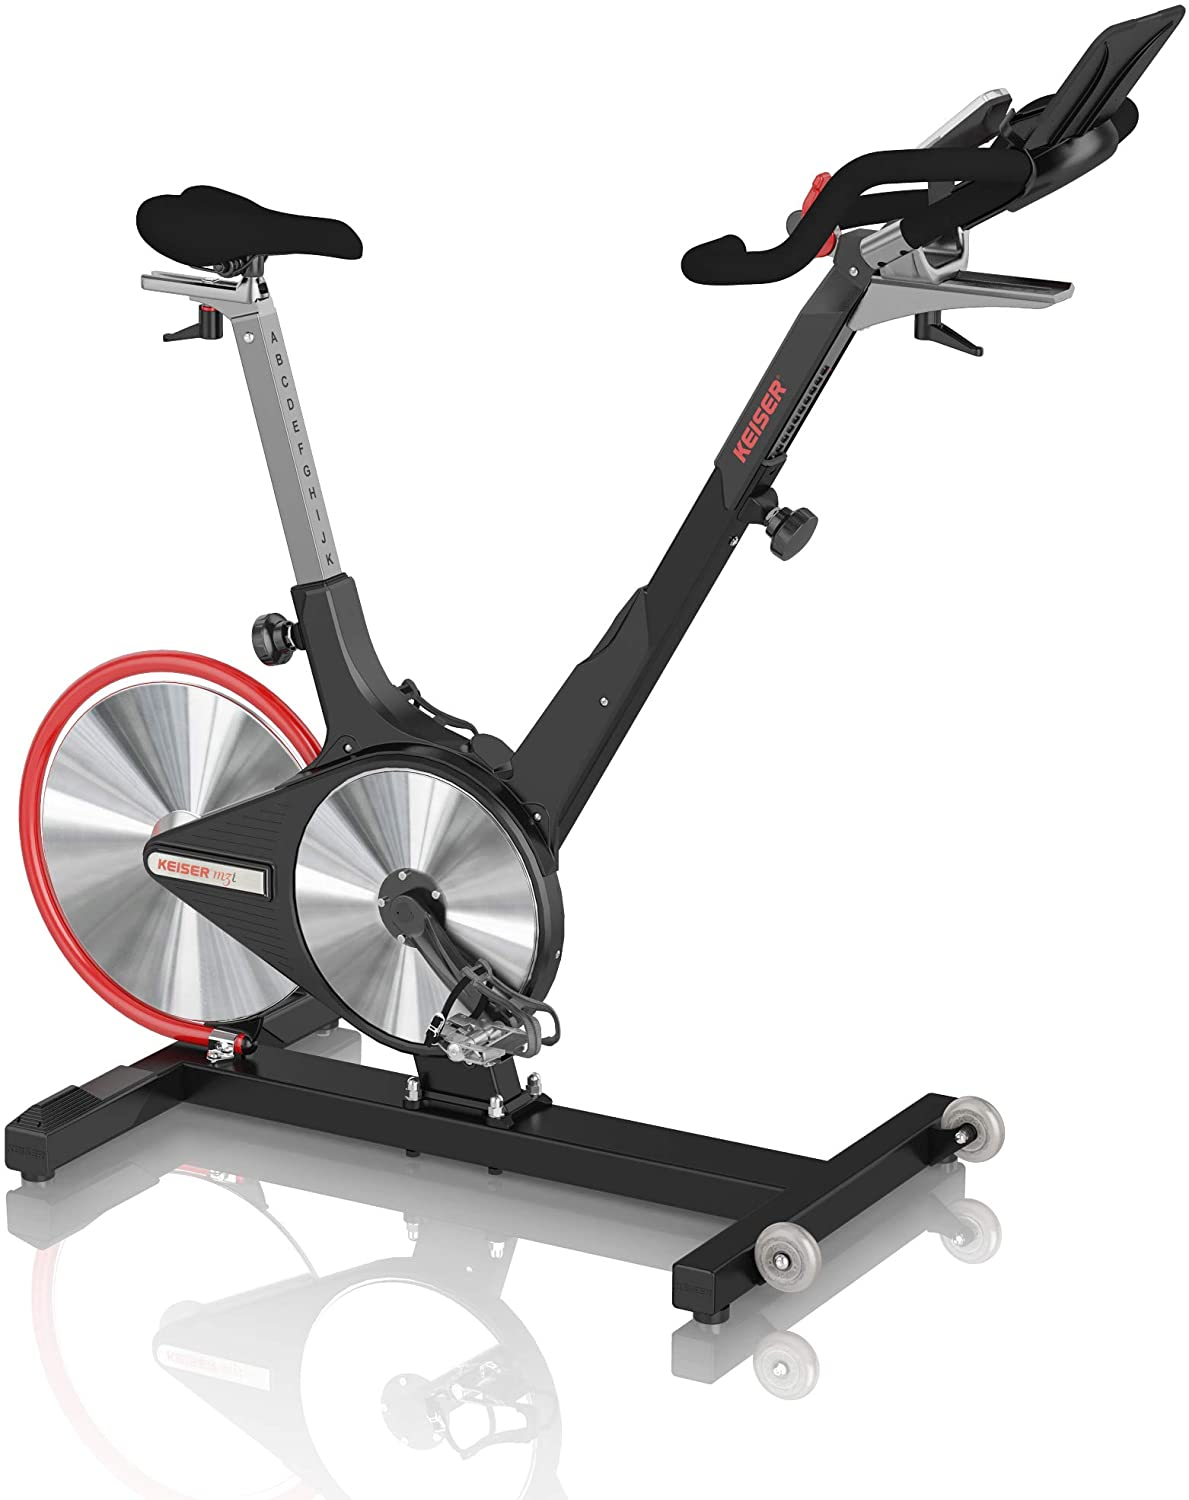 Keiser M31 Indoor Cycle Review